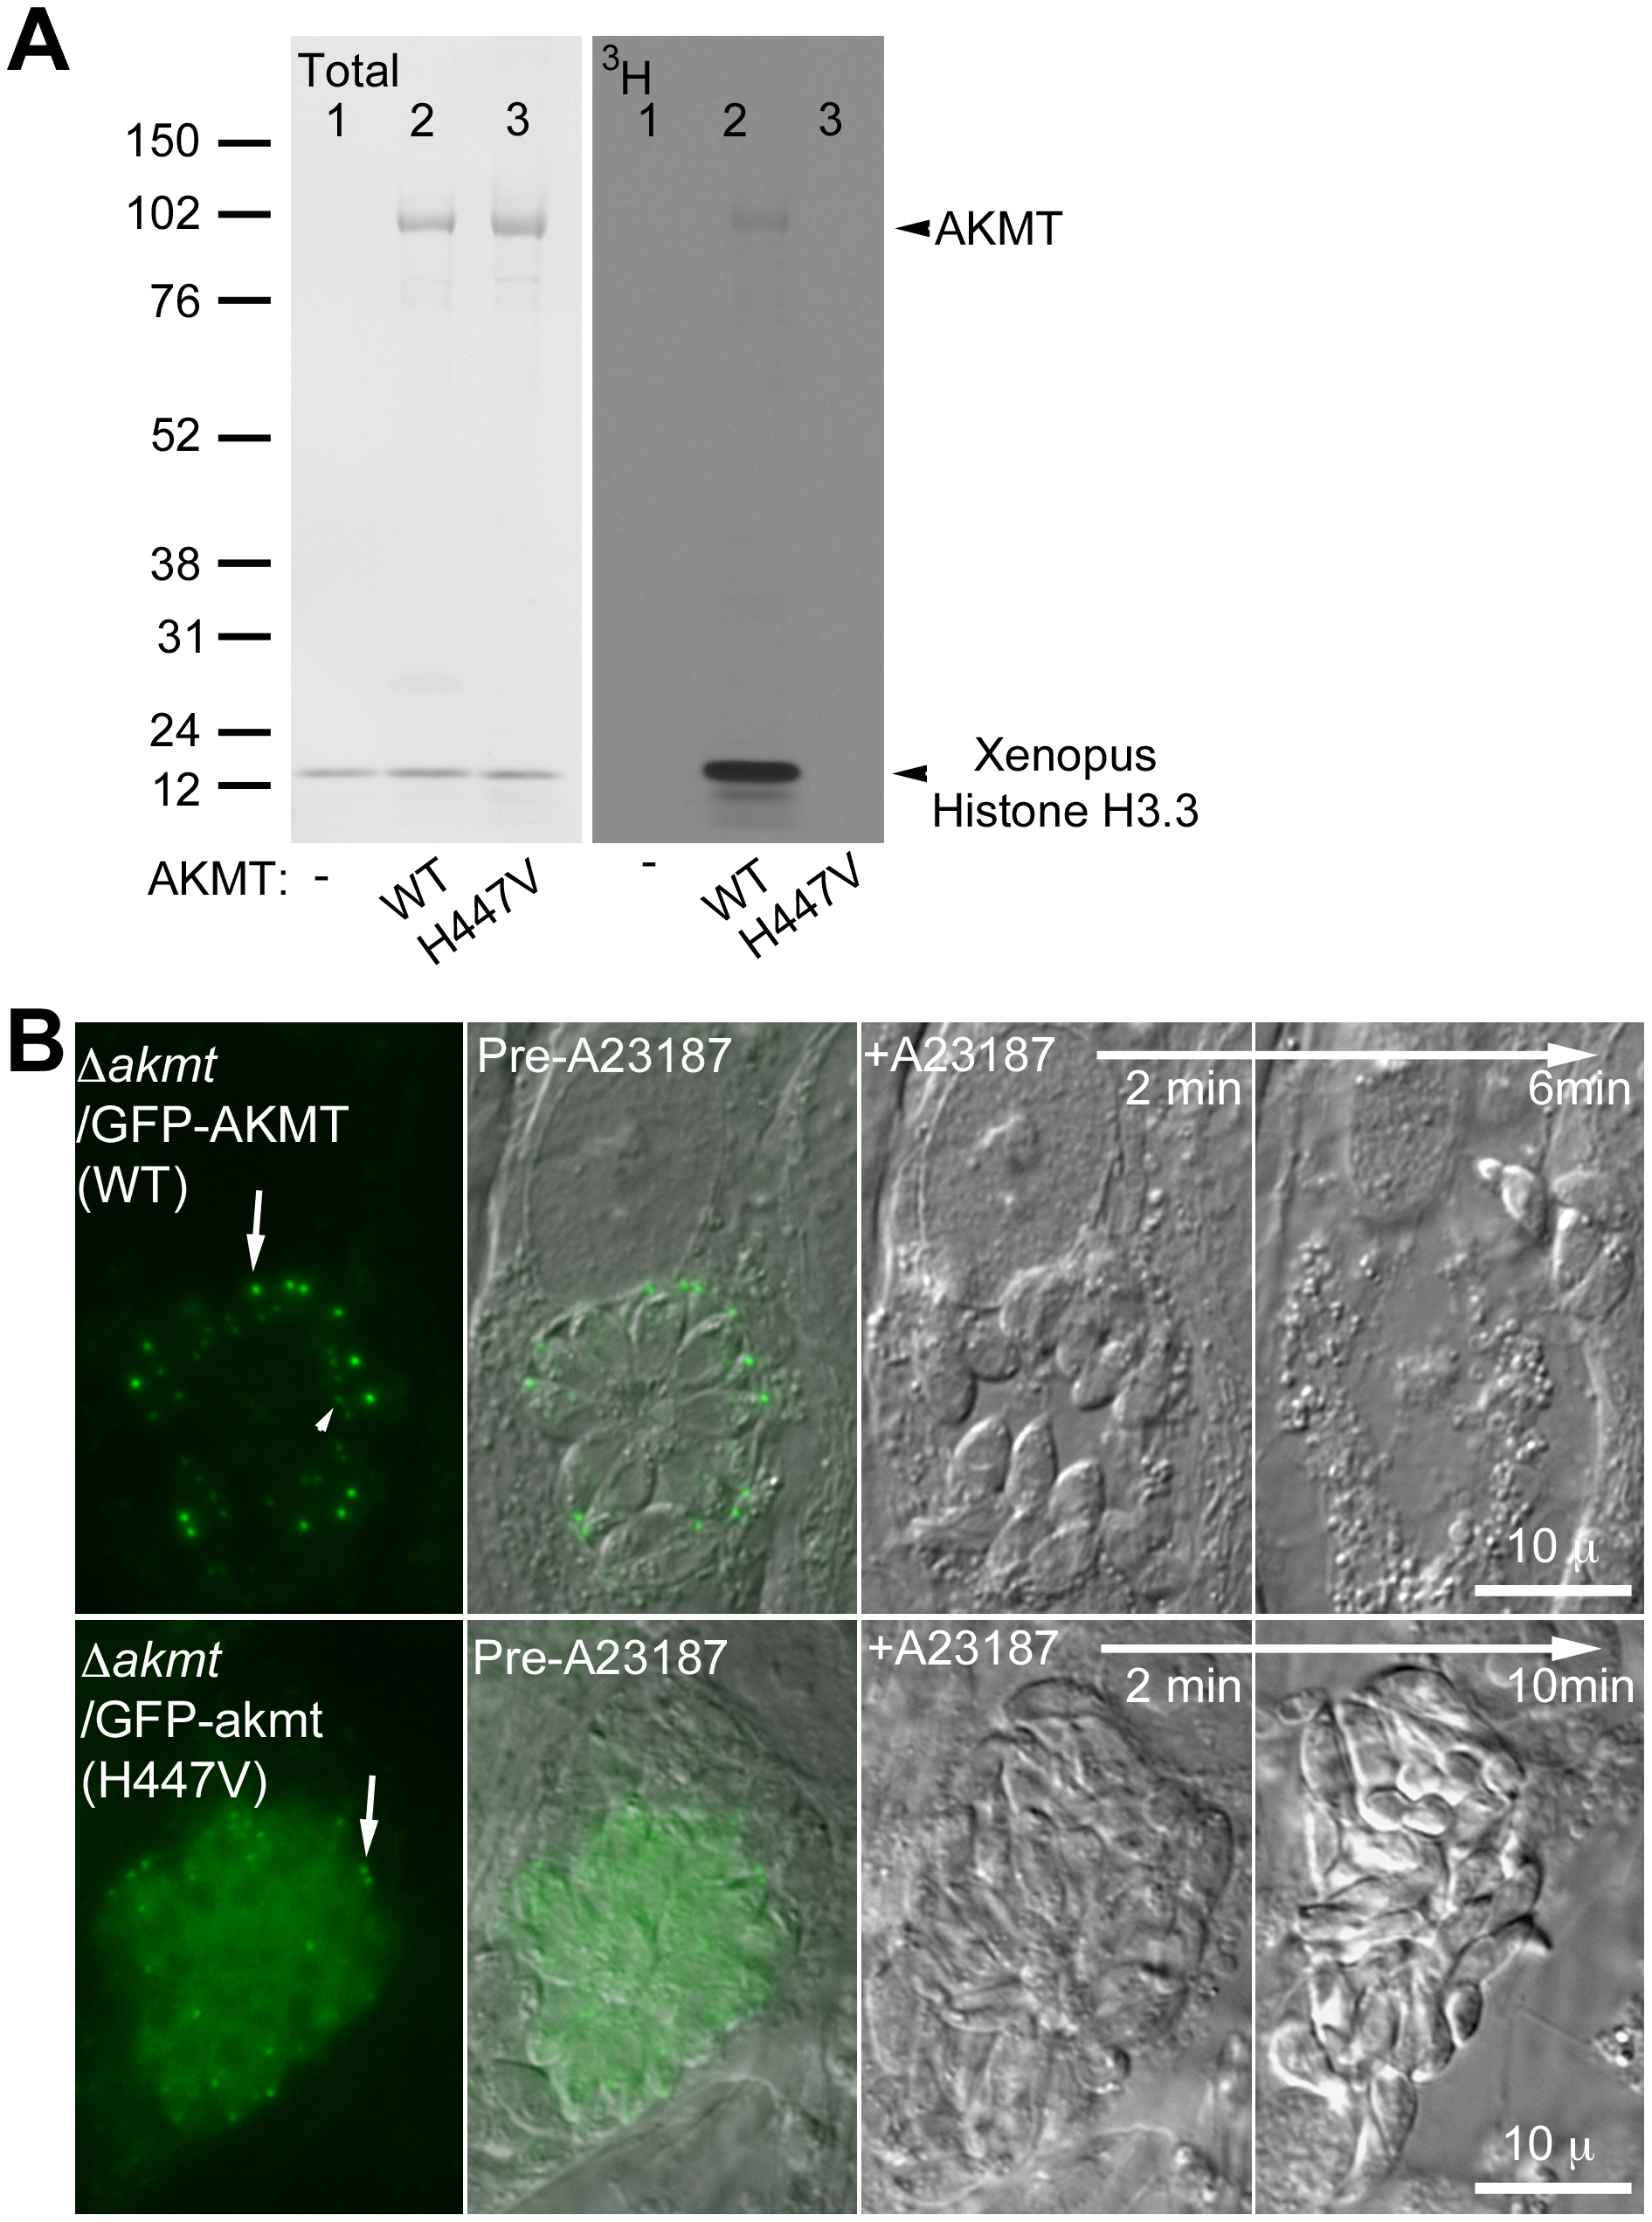 The lysine methyltransferase activity of AKMT is required for its function.